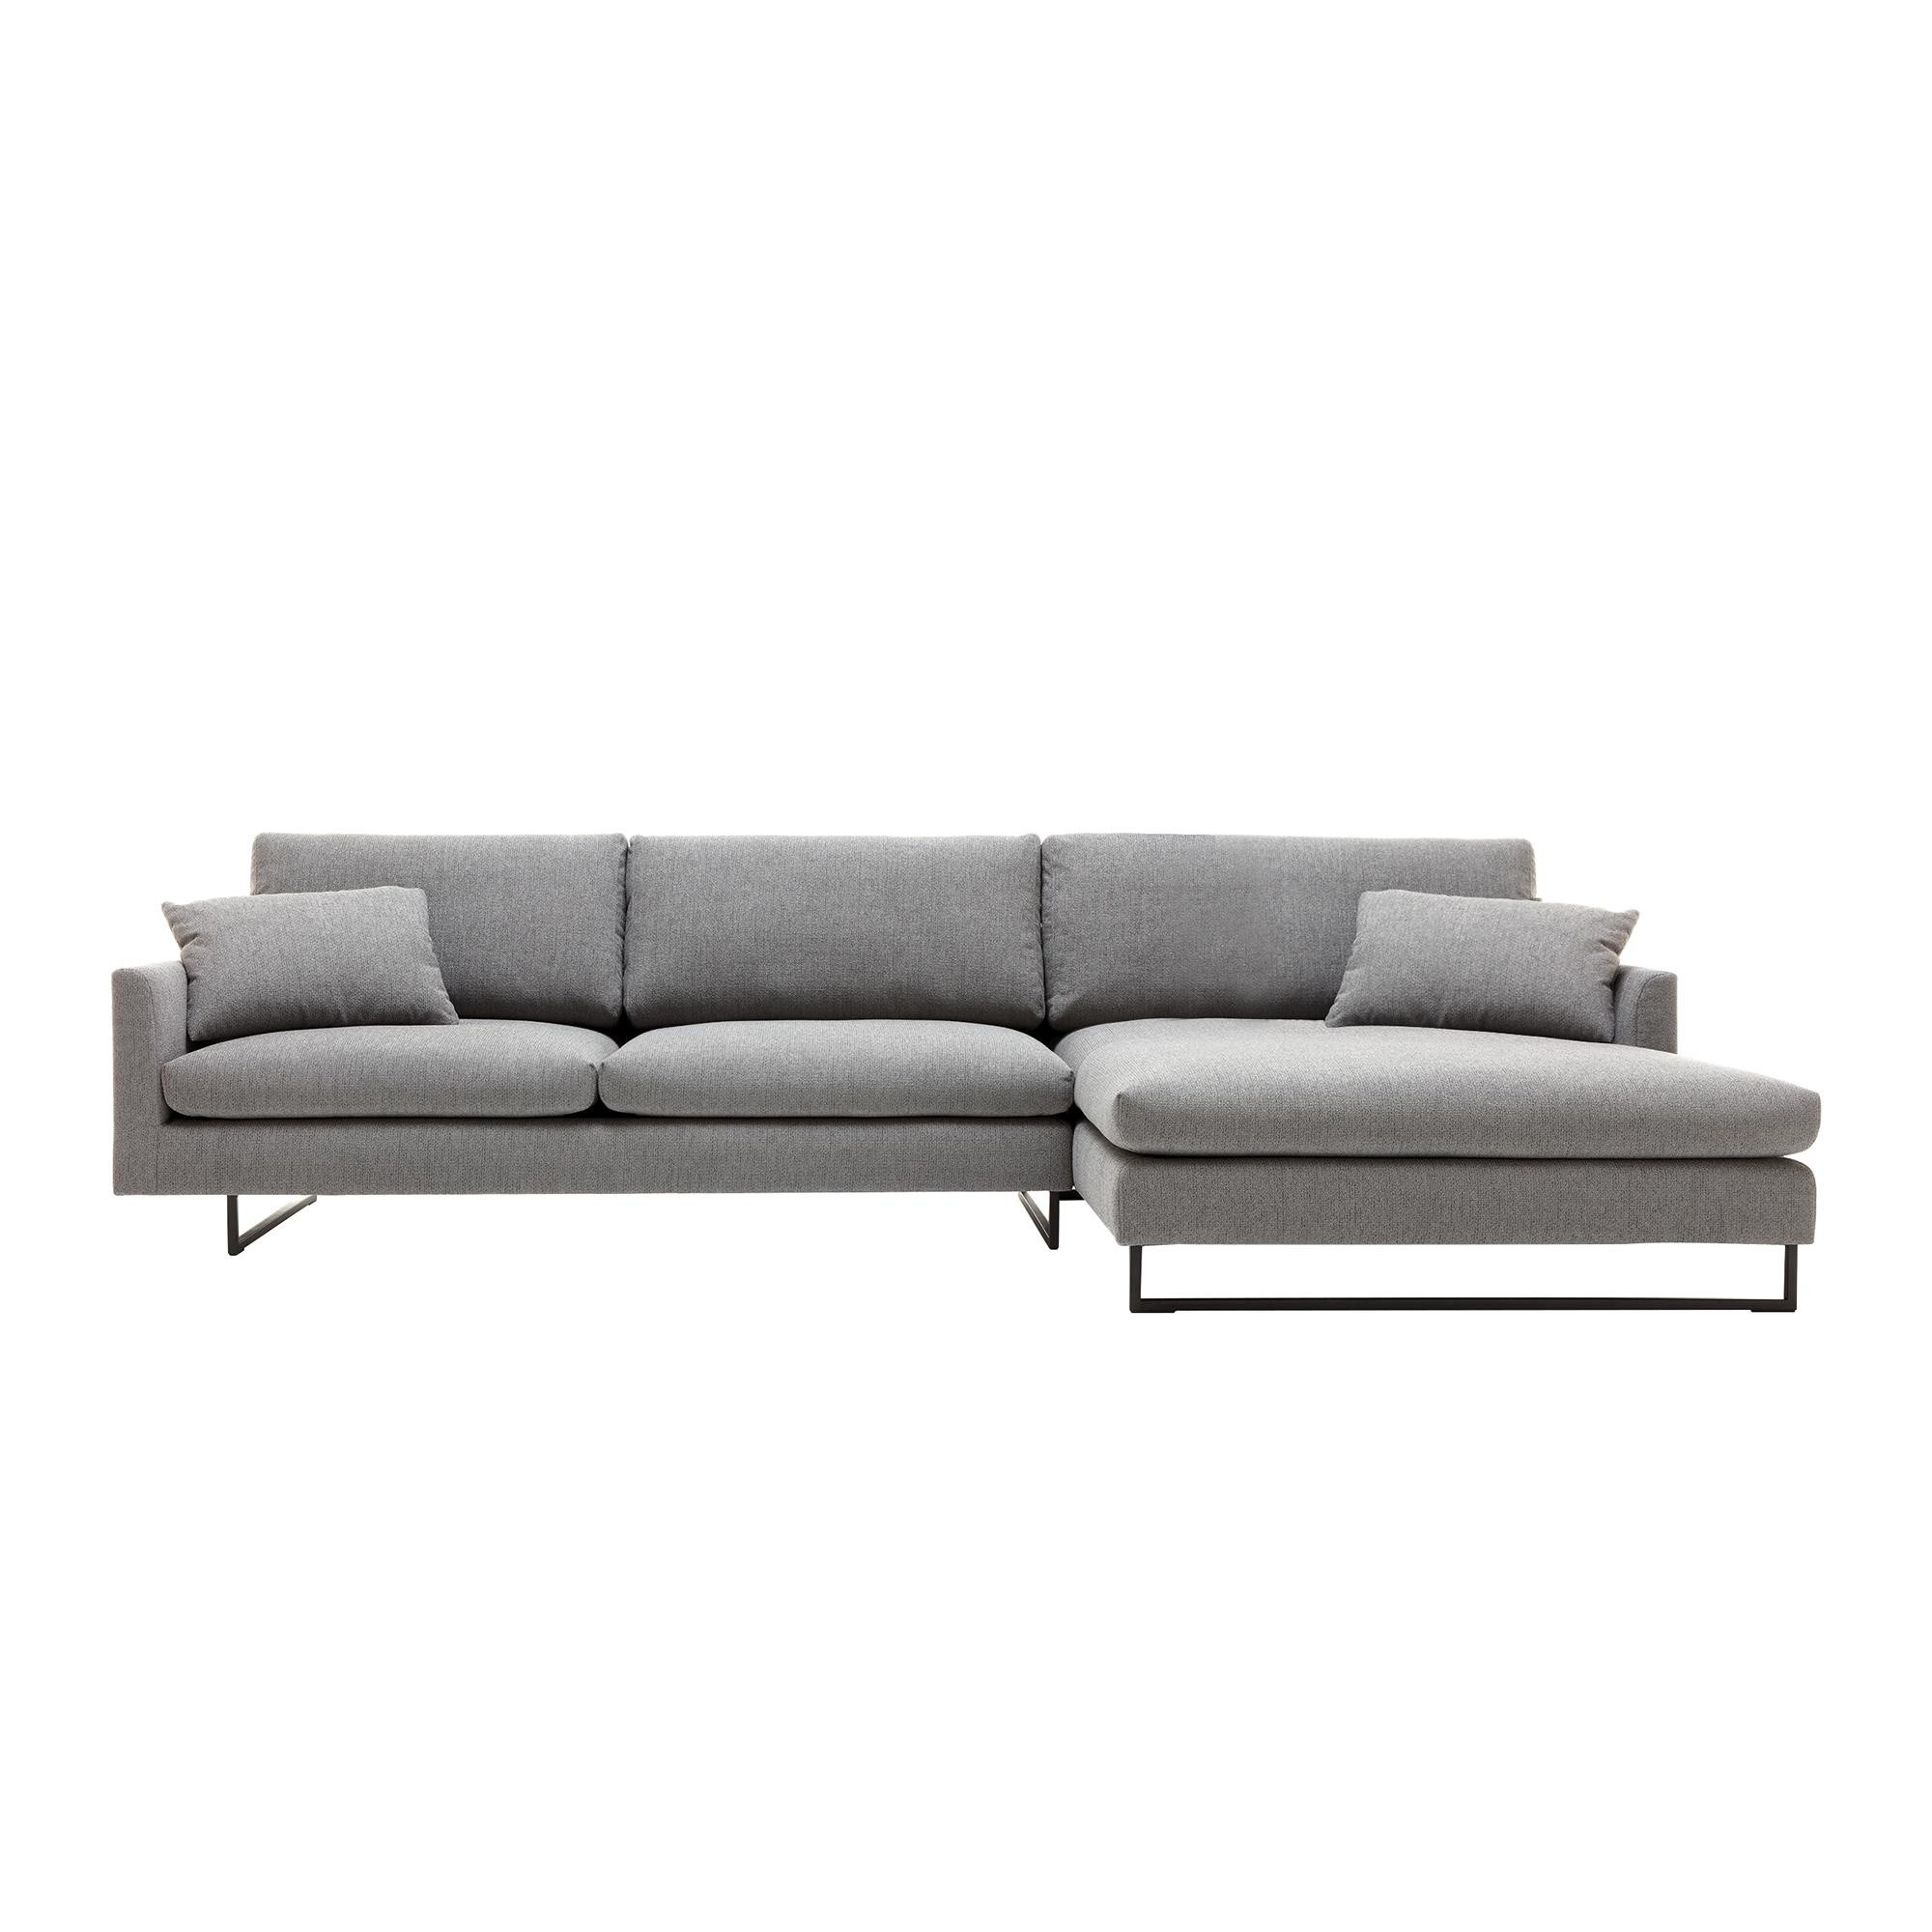 Rolf Benz Sofa Freistil Freistil 134 Lounge Sofa 330x177cm